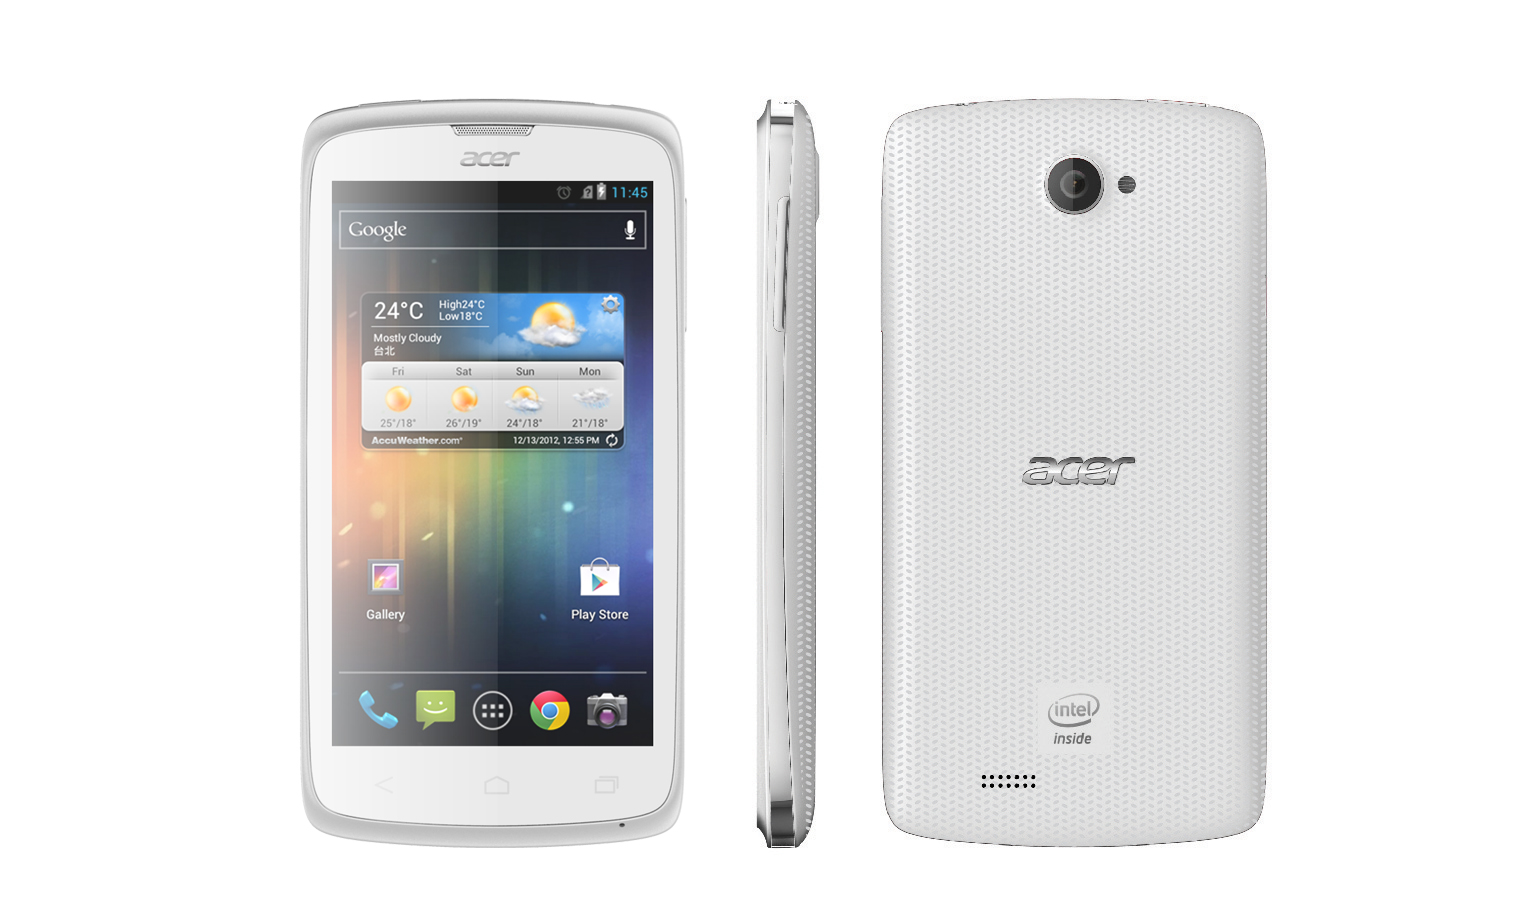 Acer Liquid C1 Smartphone with Intel Inside® - White